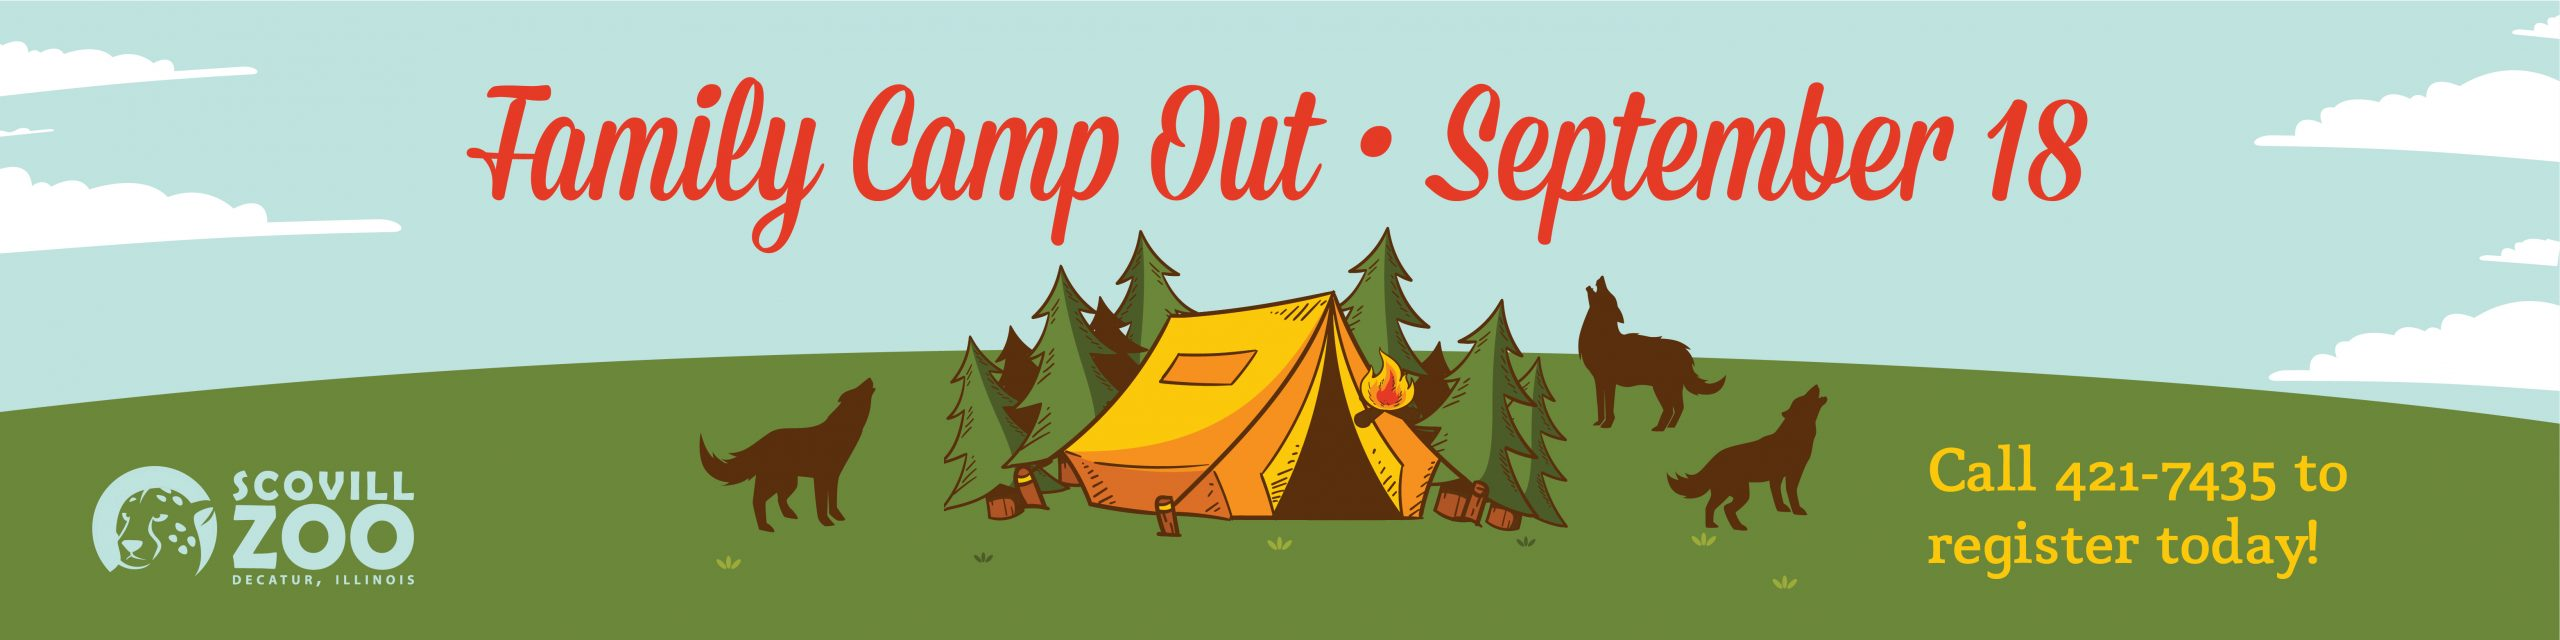 FamilyCampOut-Banners-03